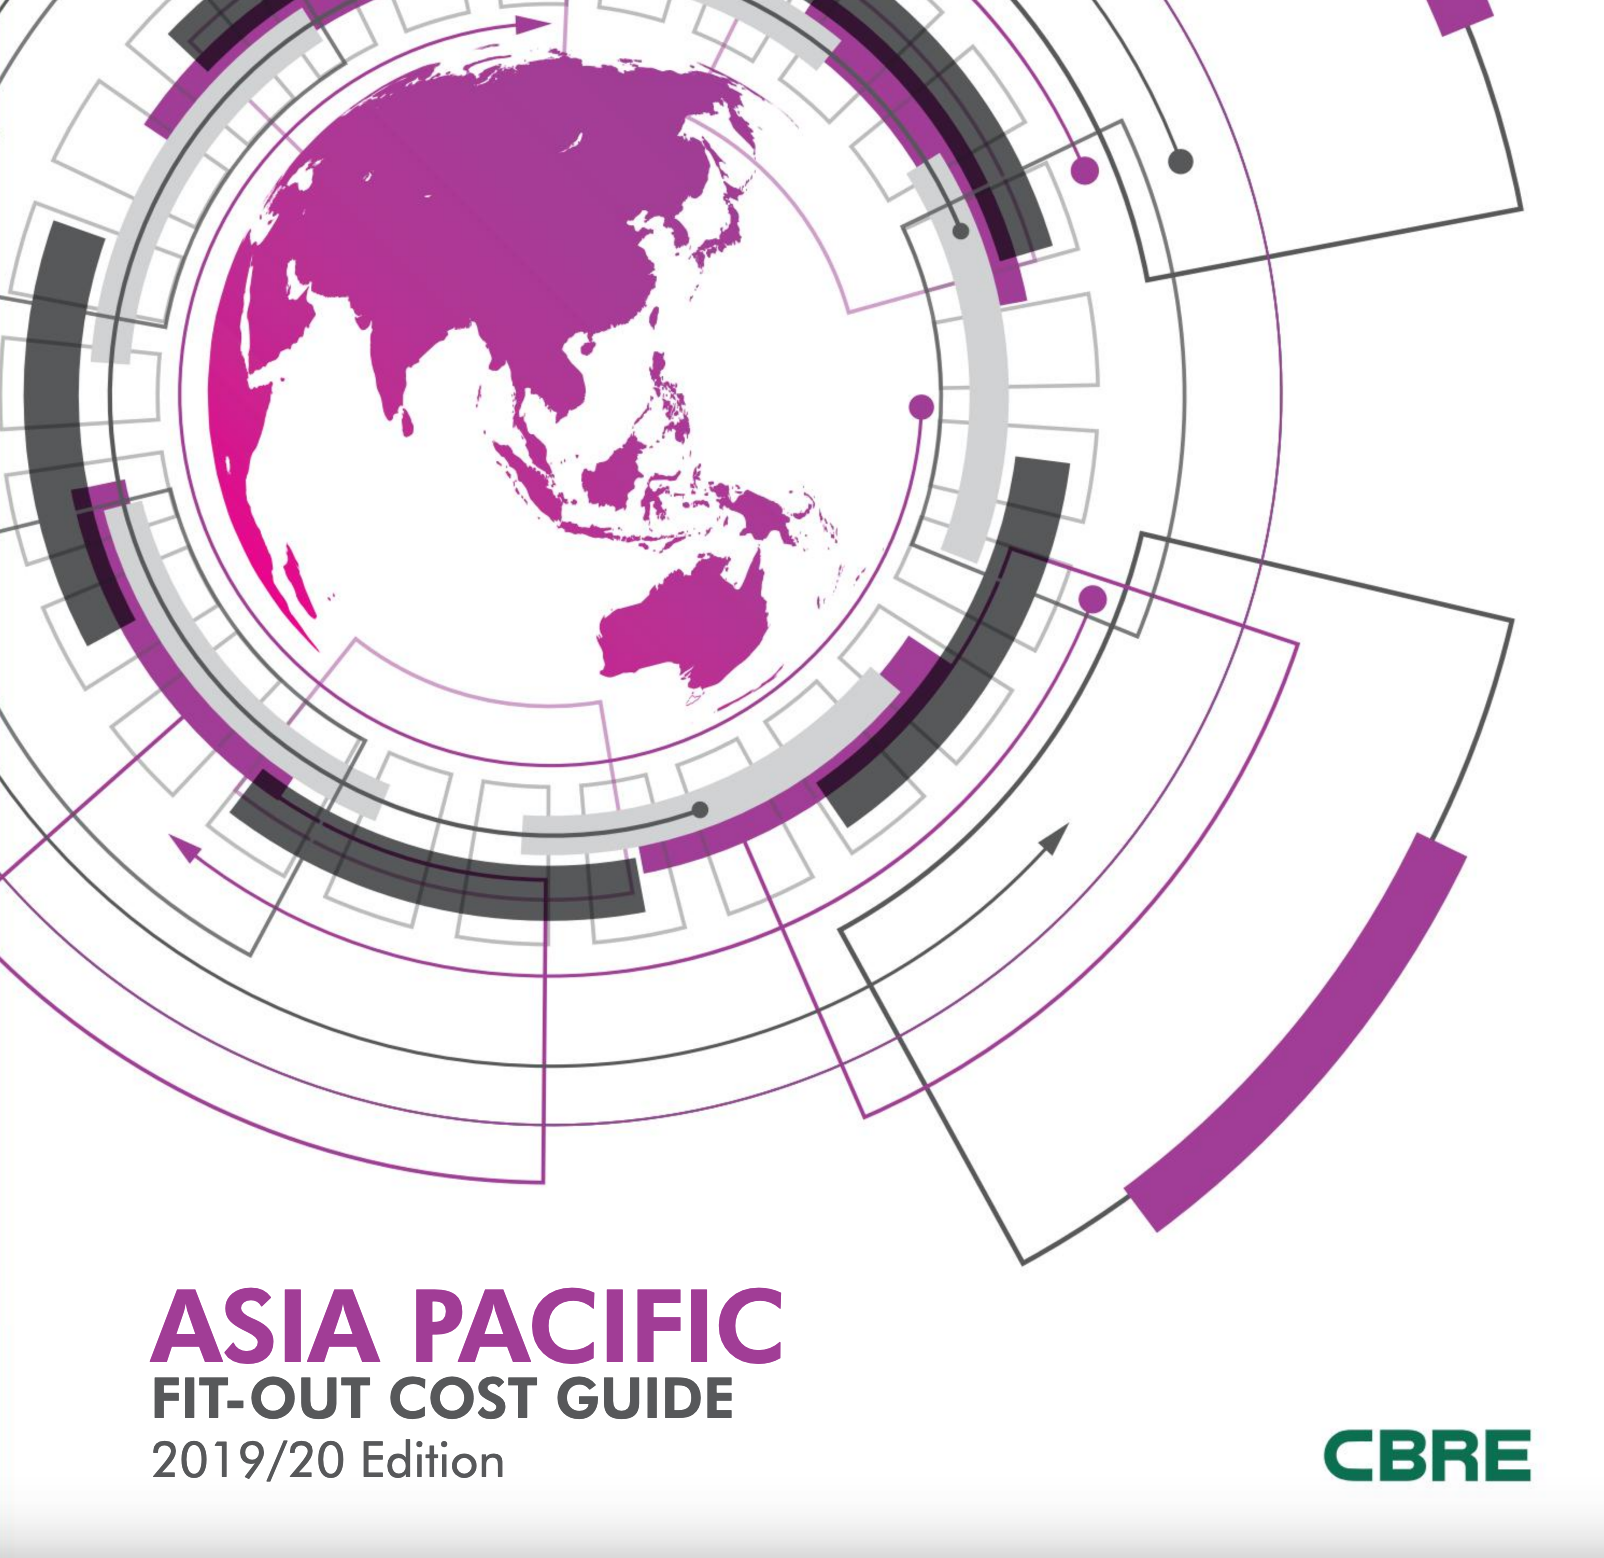 Asia Pacific Fit-Out Cost Guide 2019/20